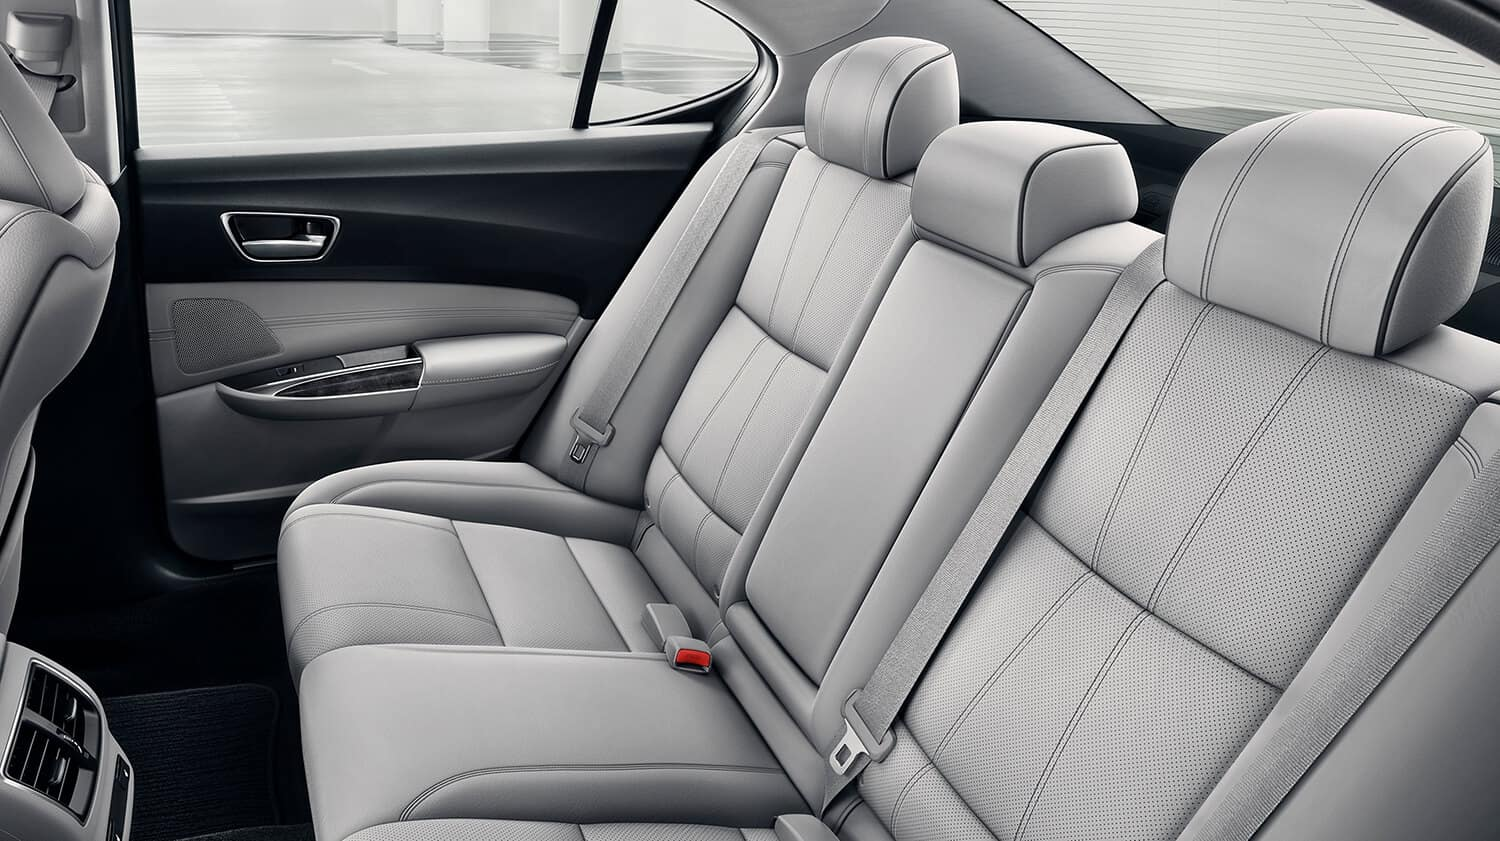 2020 Acura TLX Interior Rear Seating